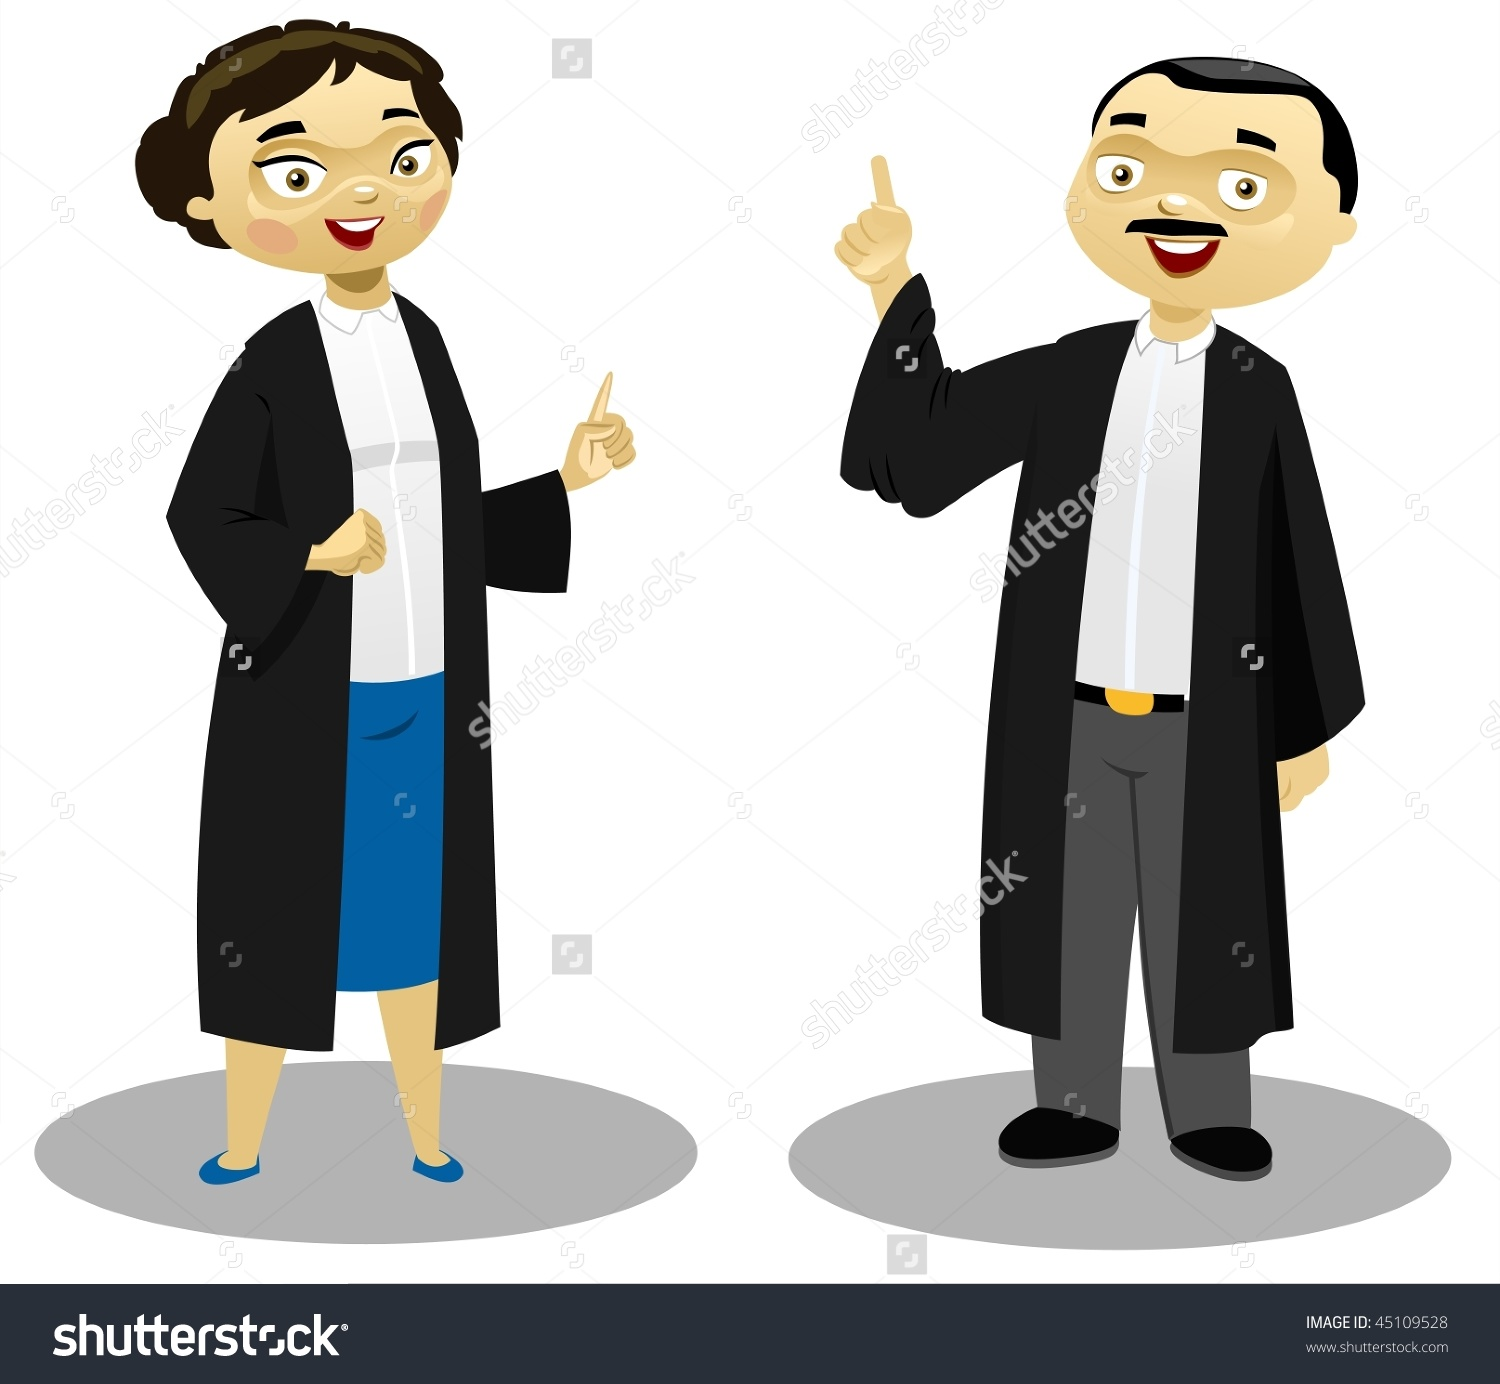 lawyer vector - photo #20